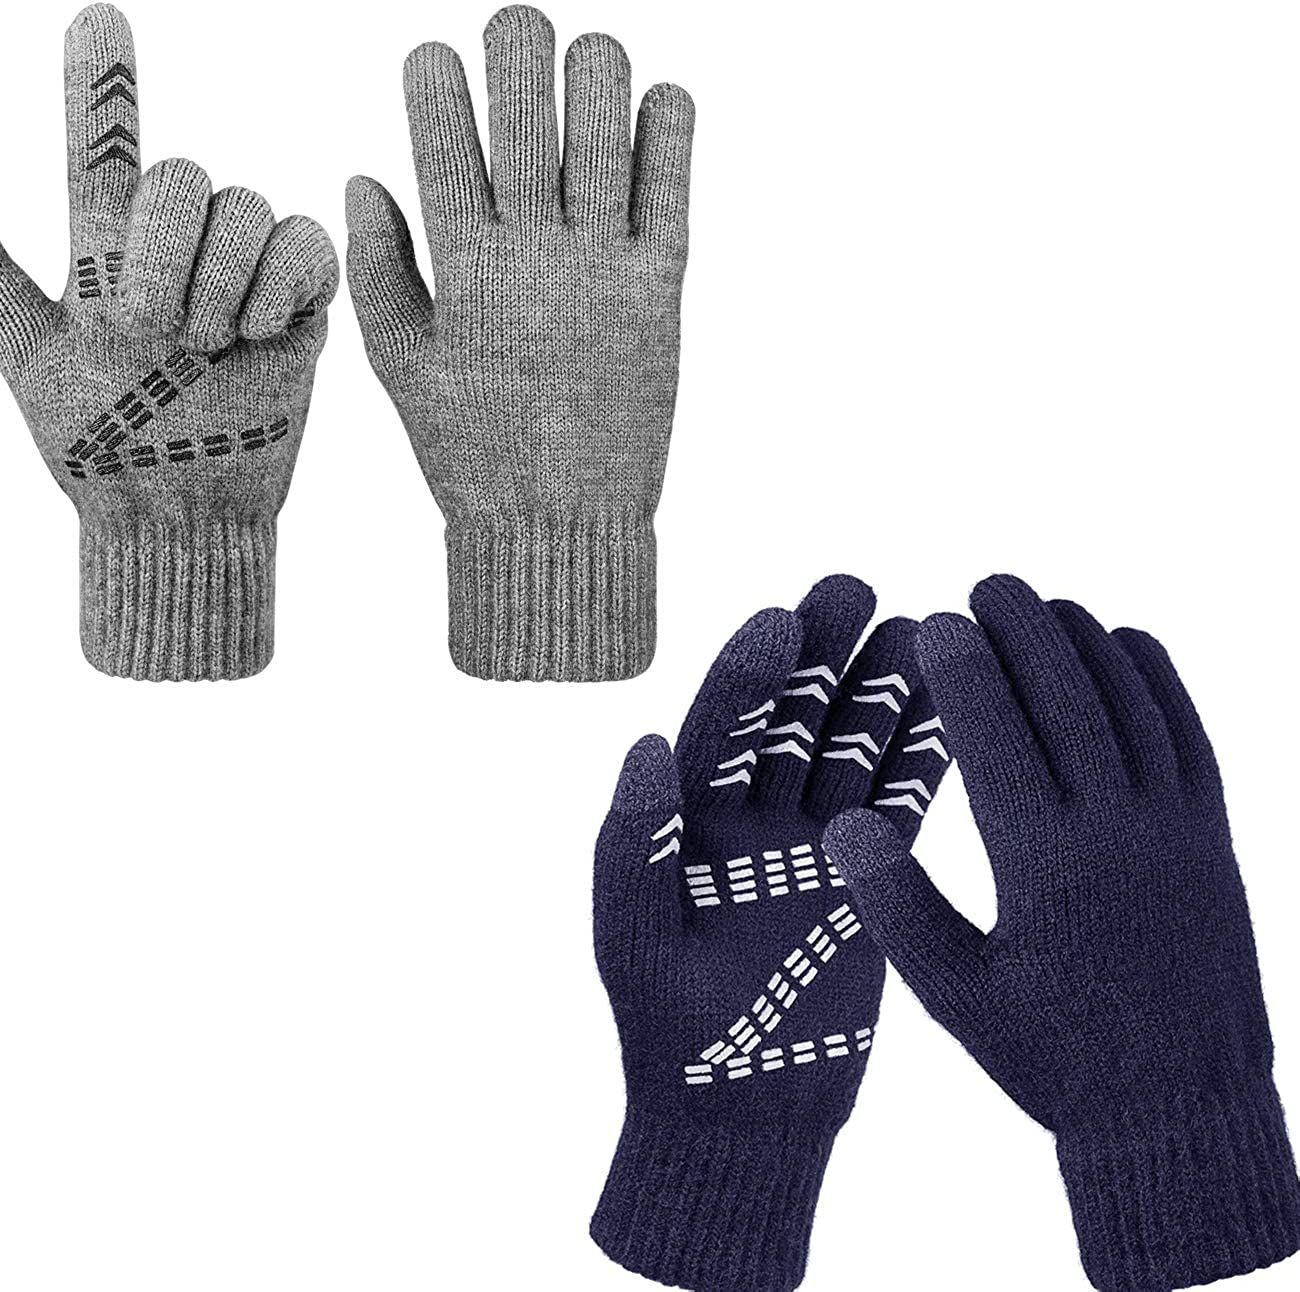 Light Weight Winter Knit Gloves Touchscreen Warm Thermal Soft Lining Anti-Slip Gloves for Men and Women